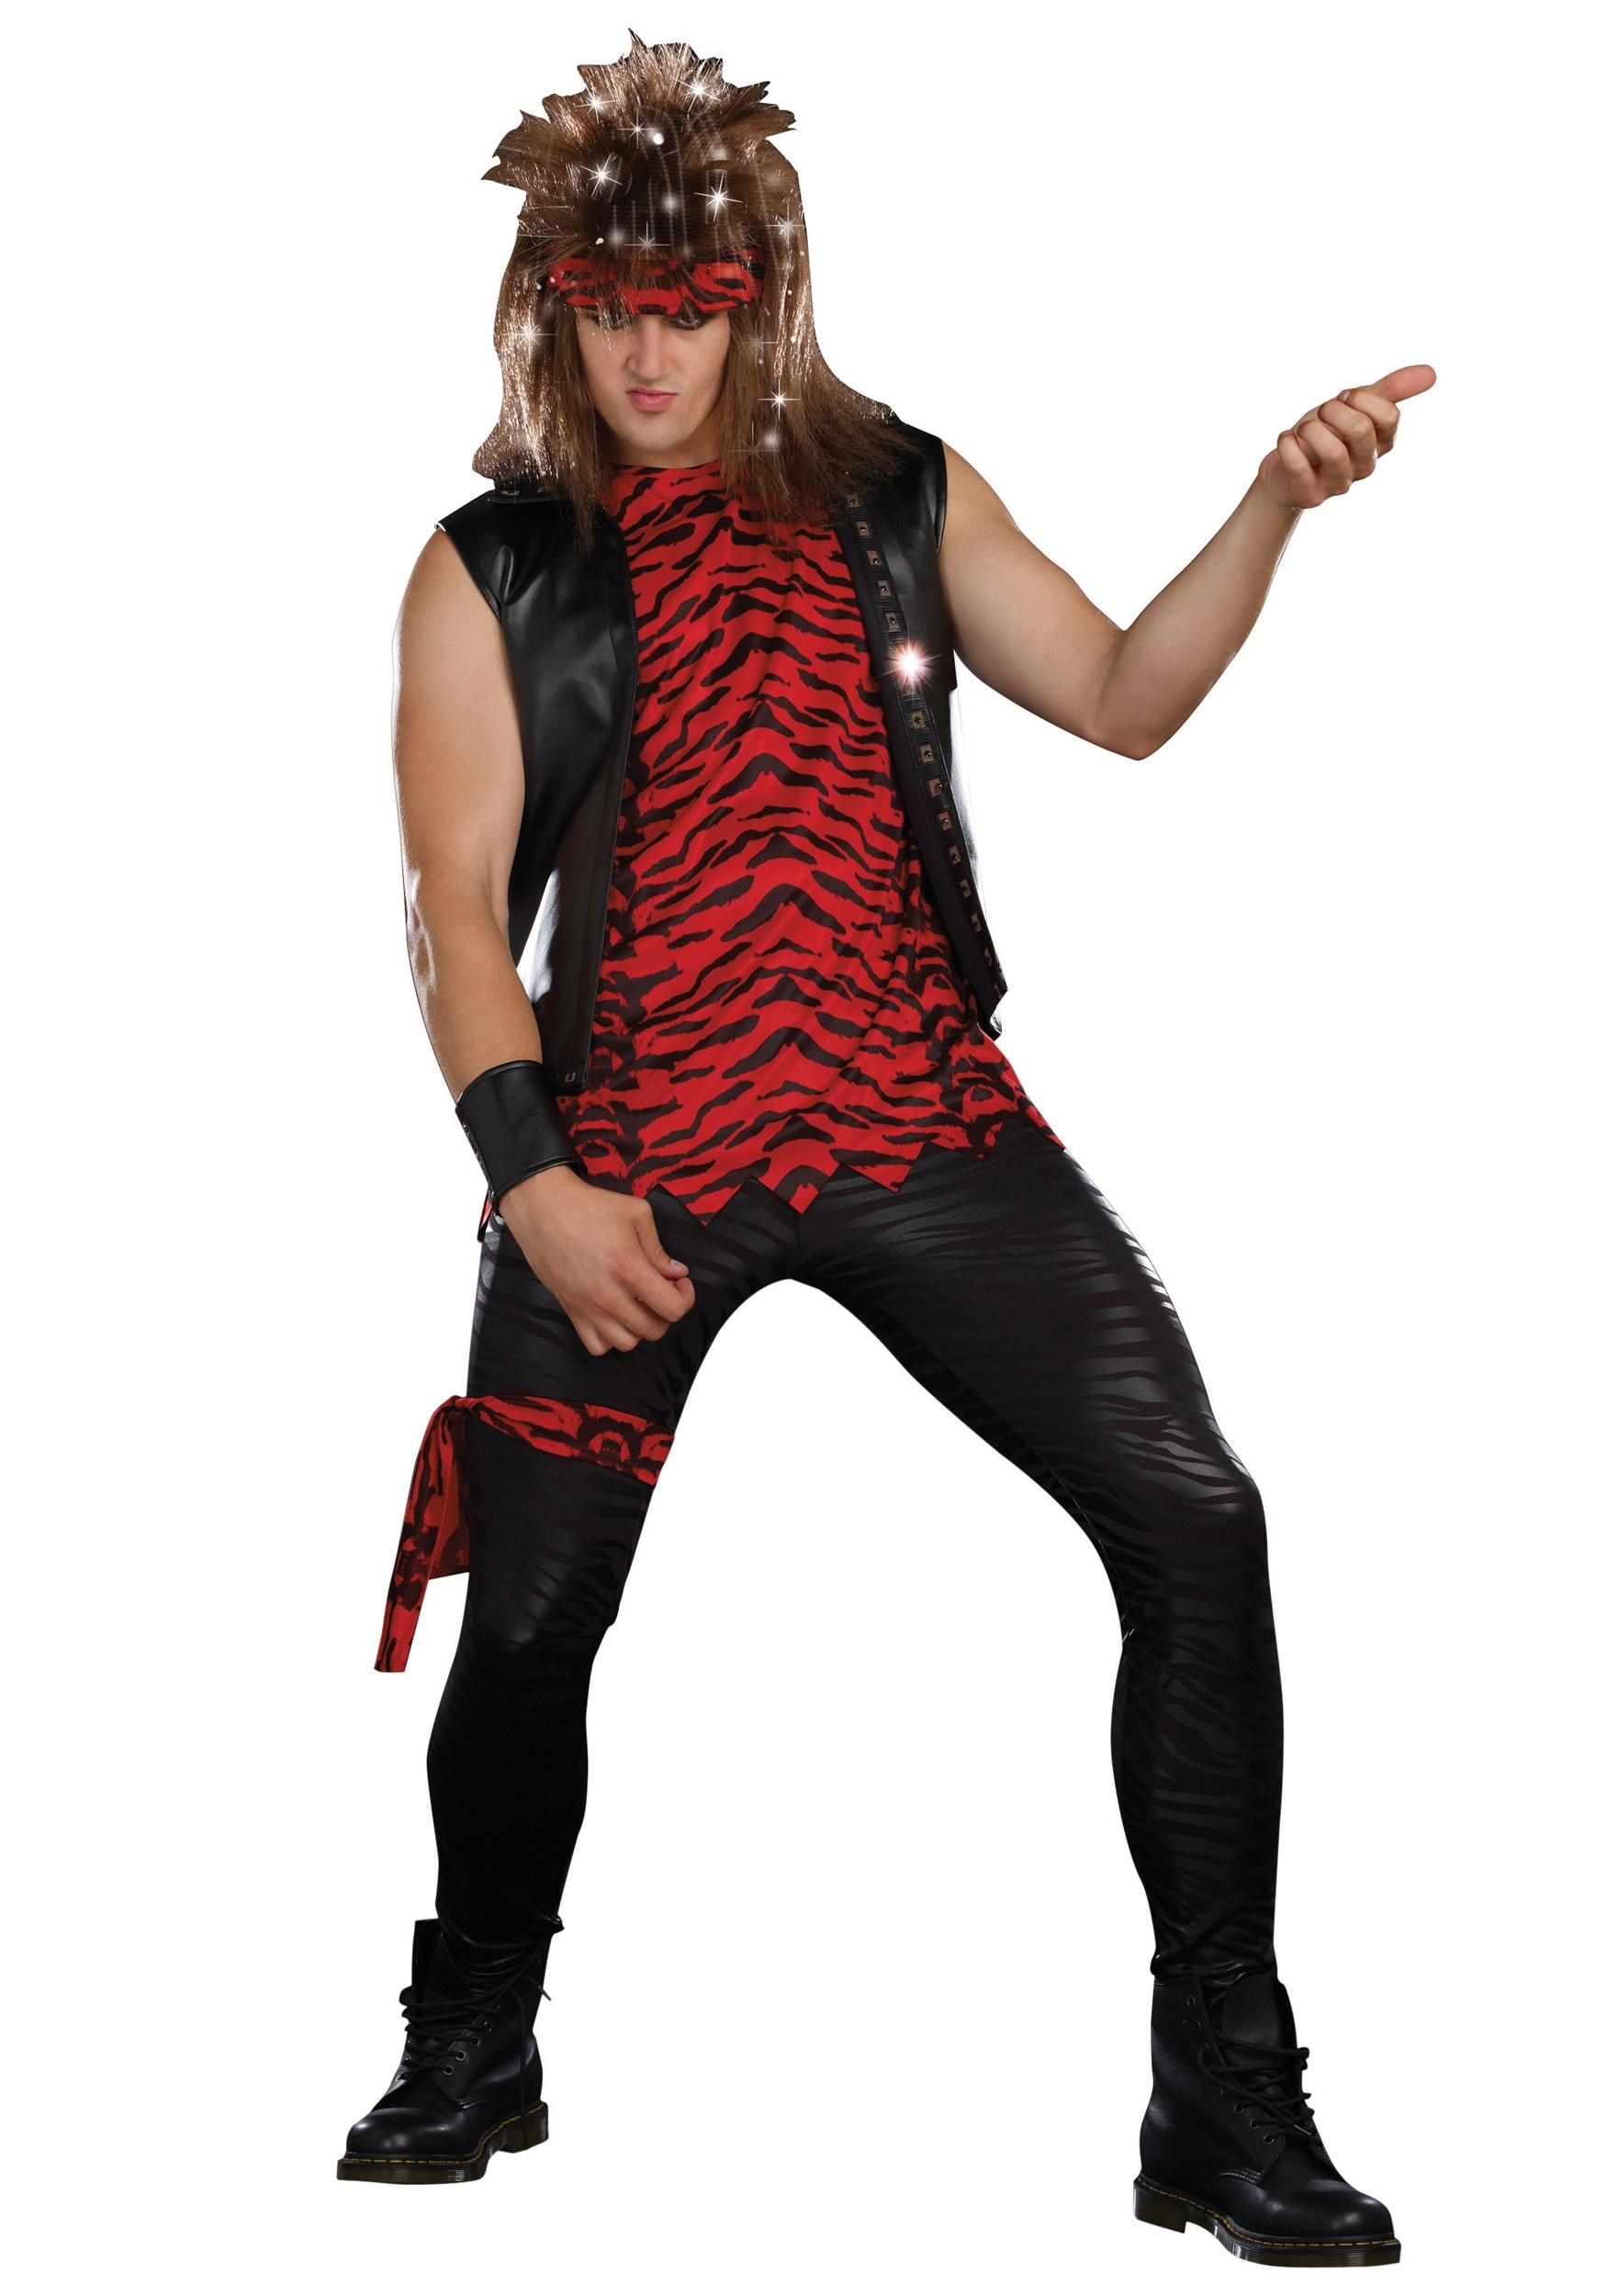 Adult Male Halloween Costume Ideas  Shopping Guide We Are Number One  Where To Buy Cute Clothes